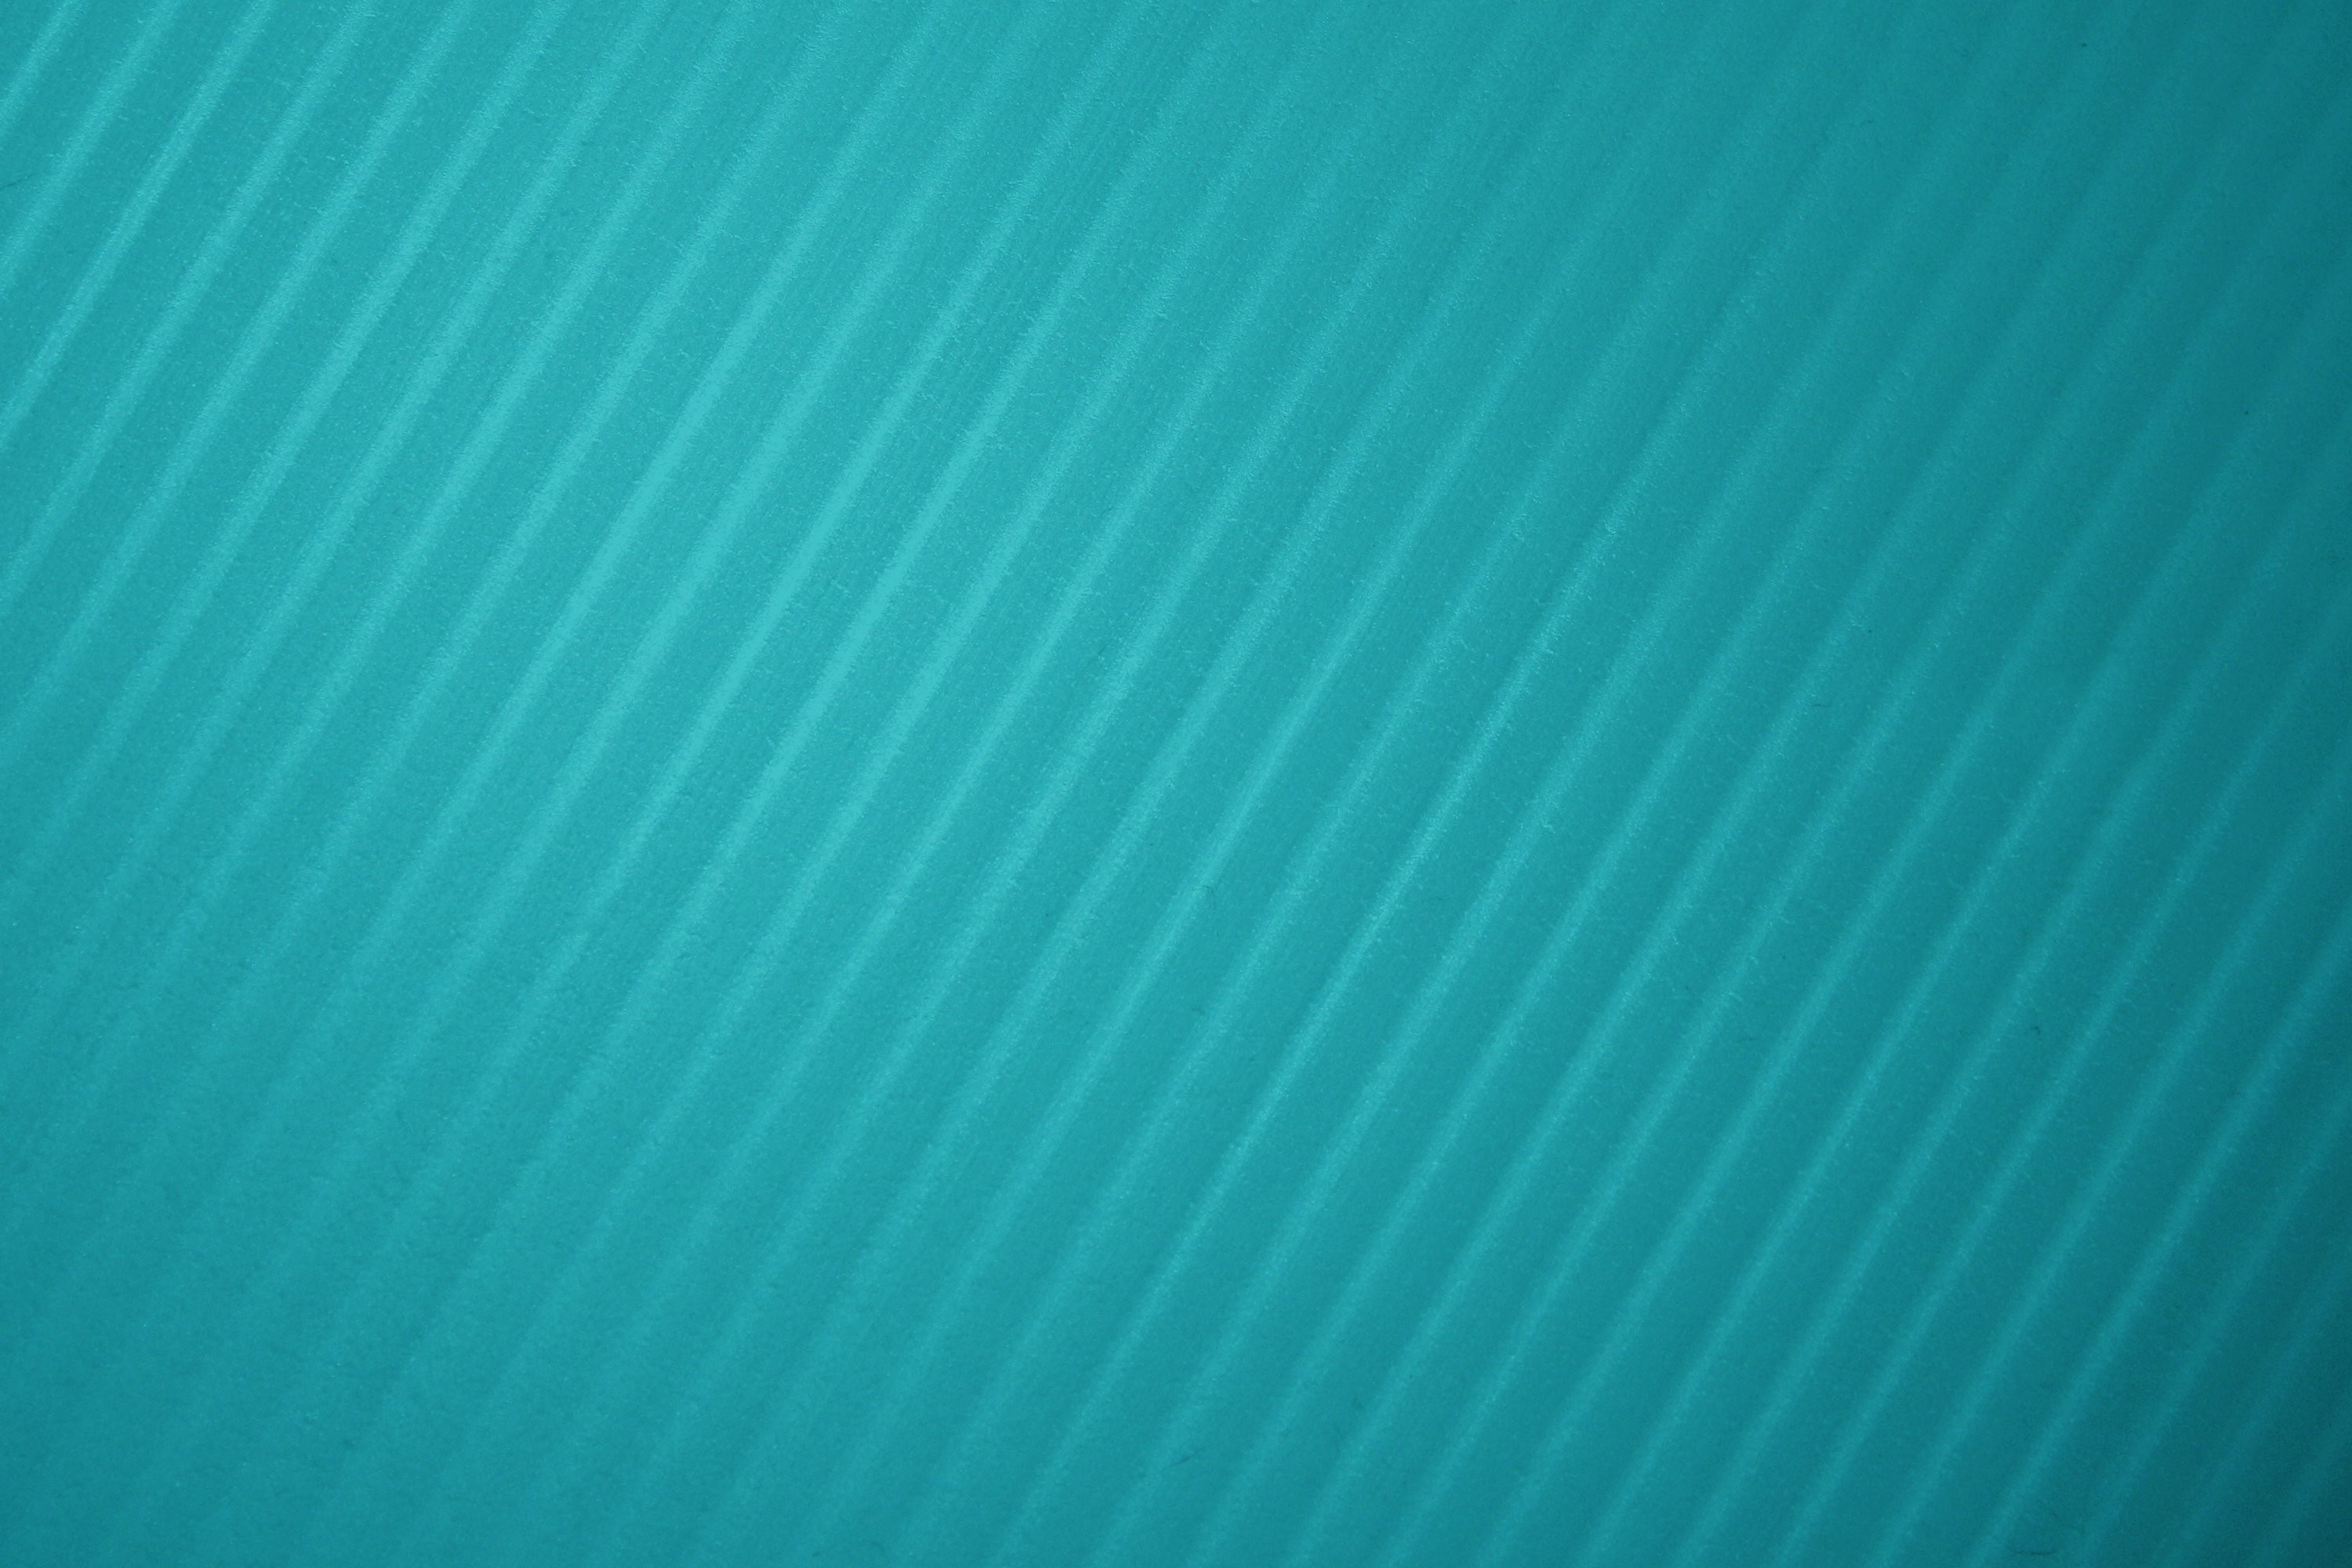 3000x2000 Teal-widescreen-lines-background-HD-wallpapers